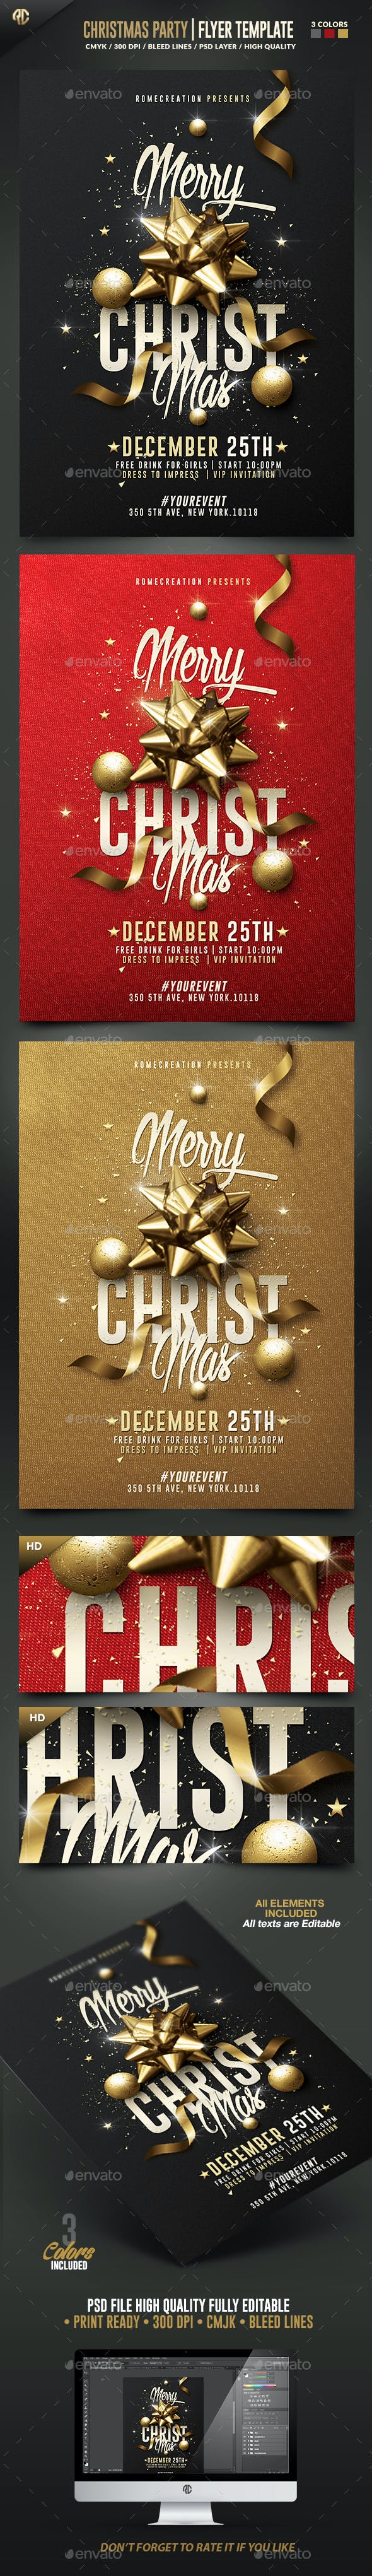 Cly Christmas Party Psd Flyer Template By Romecreation